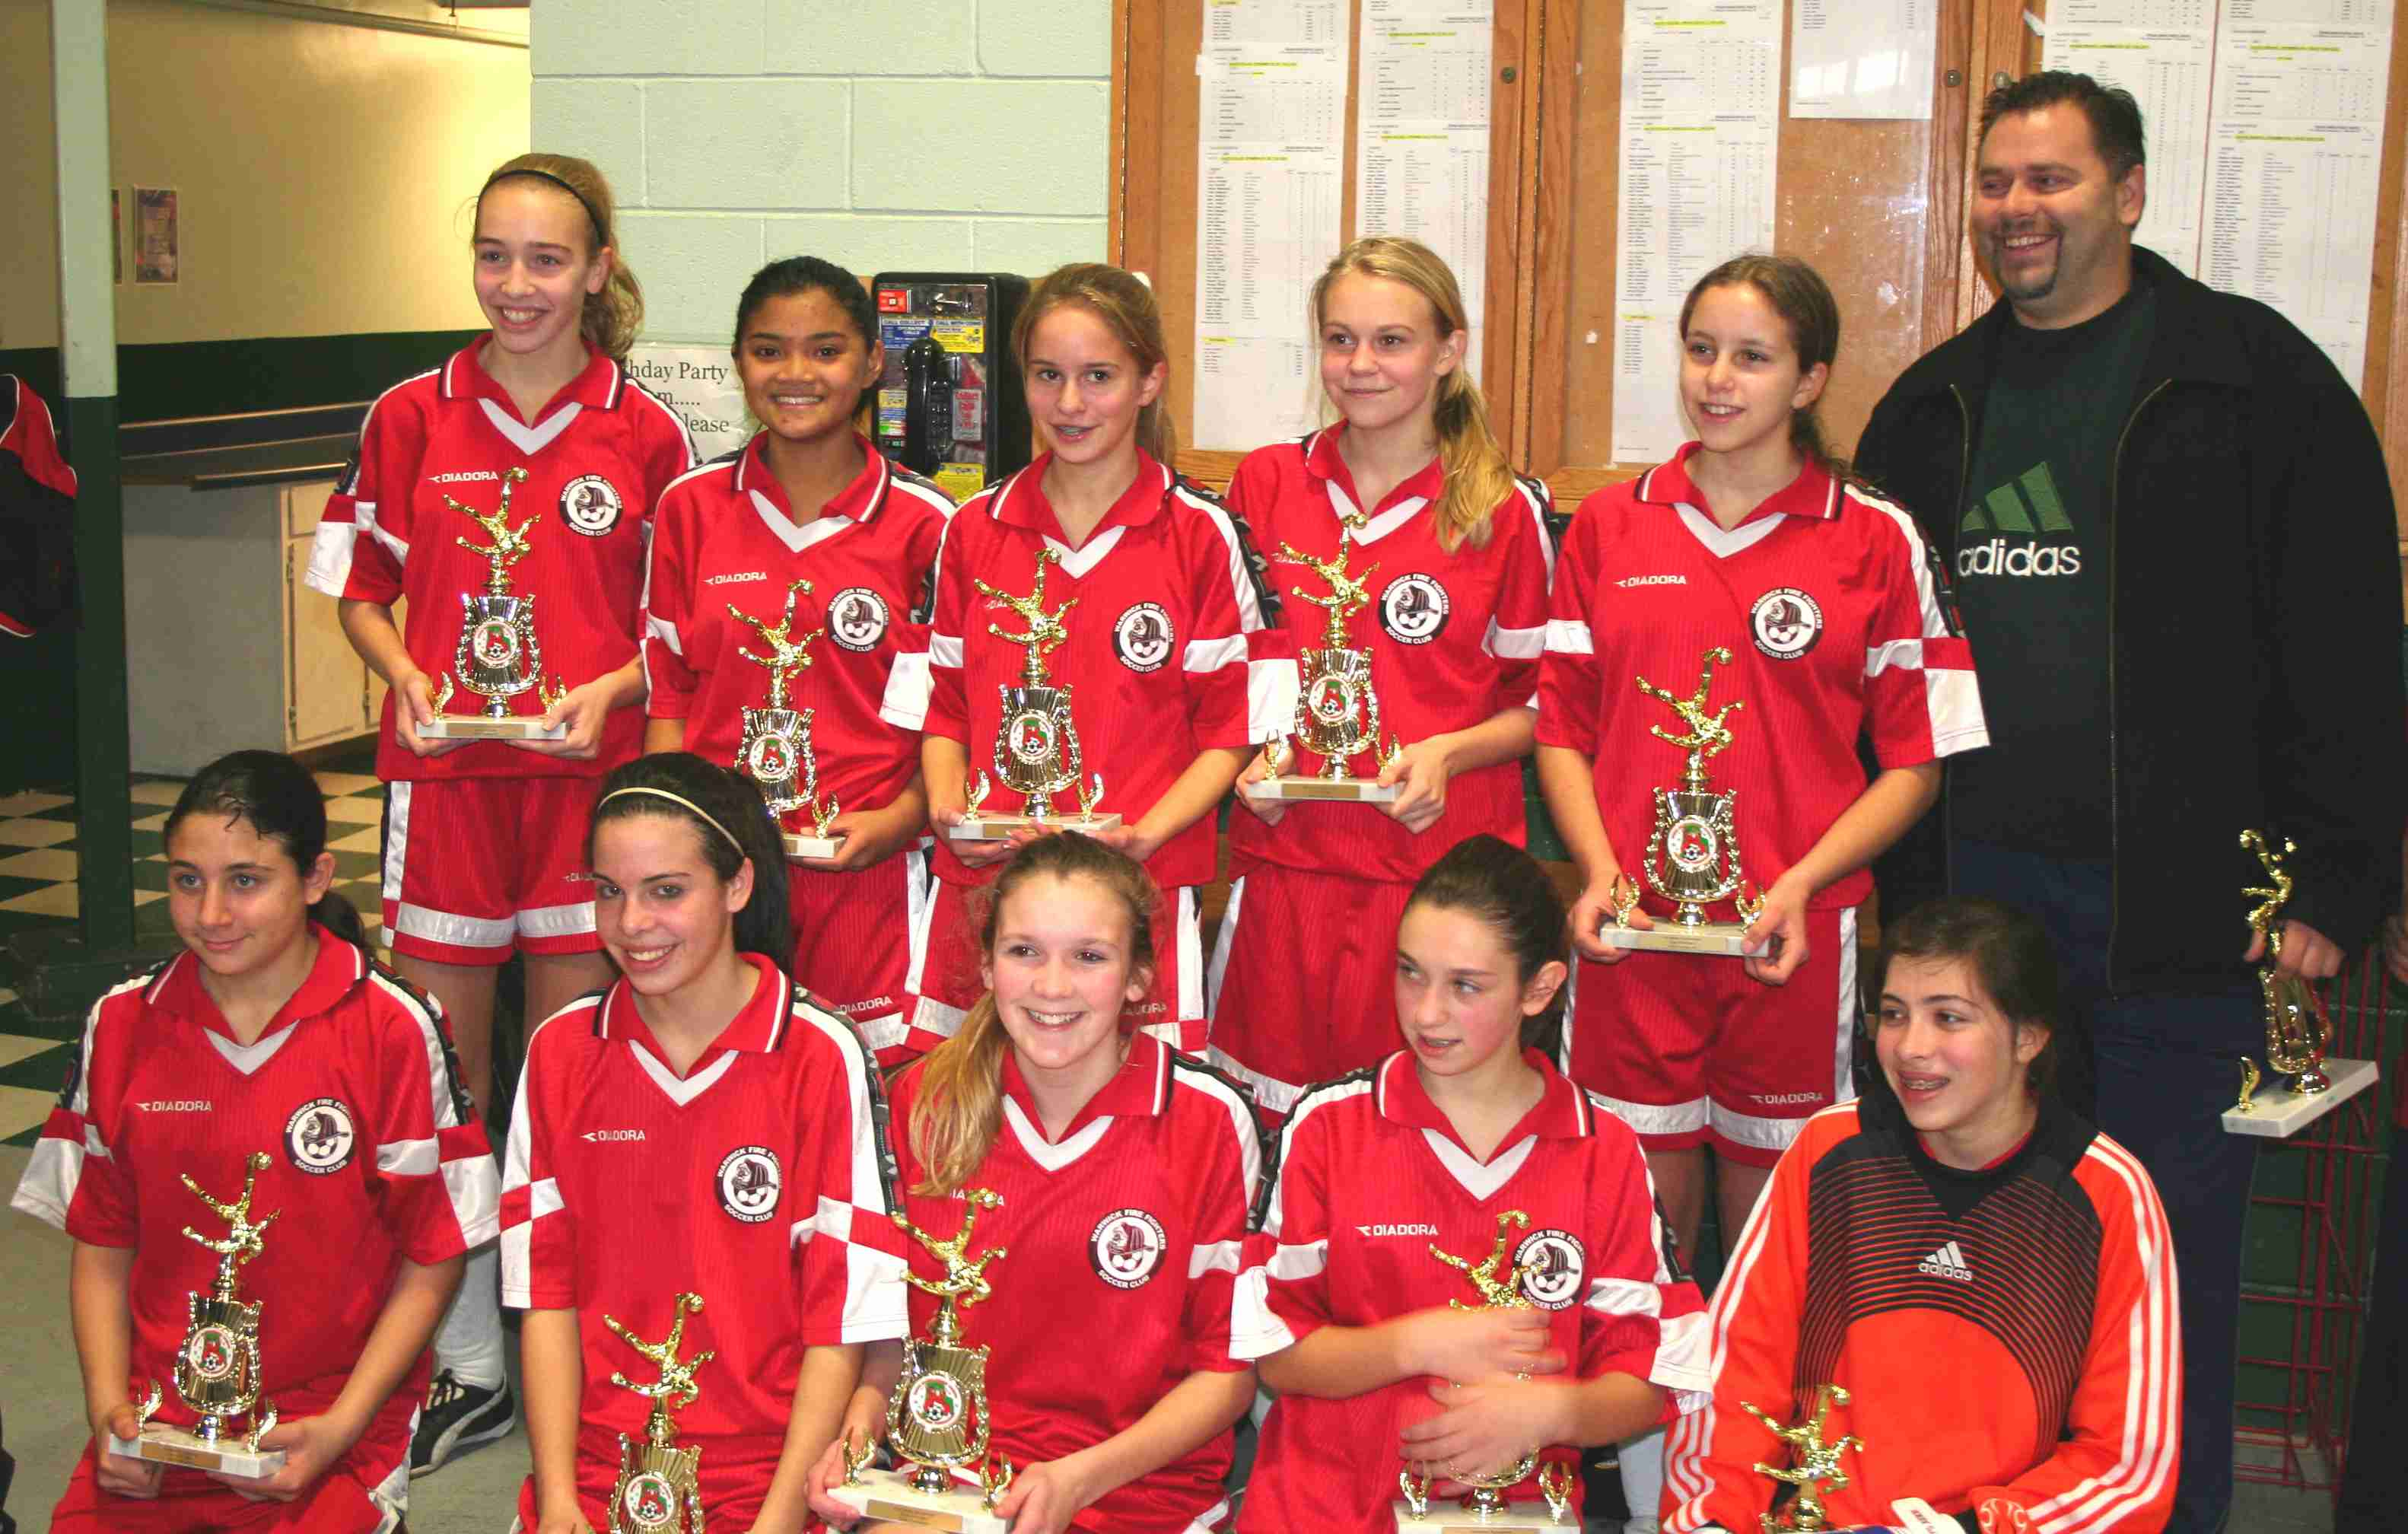 U14 Girls Champs 2006